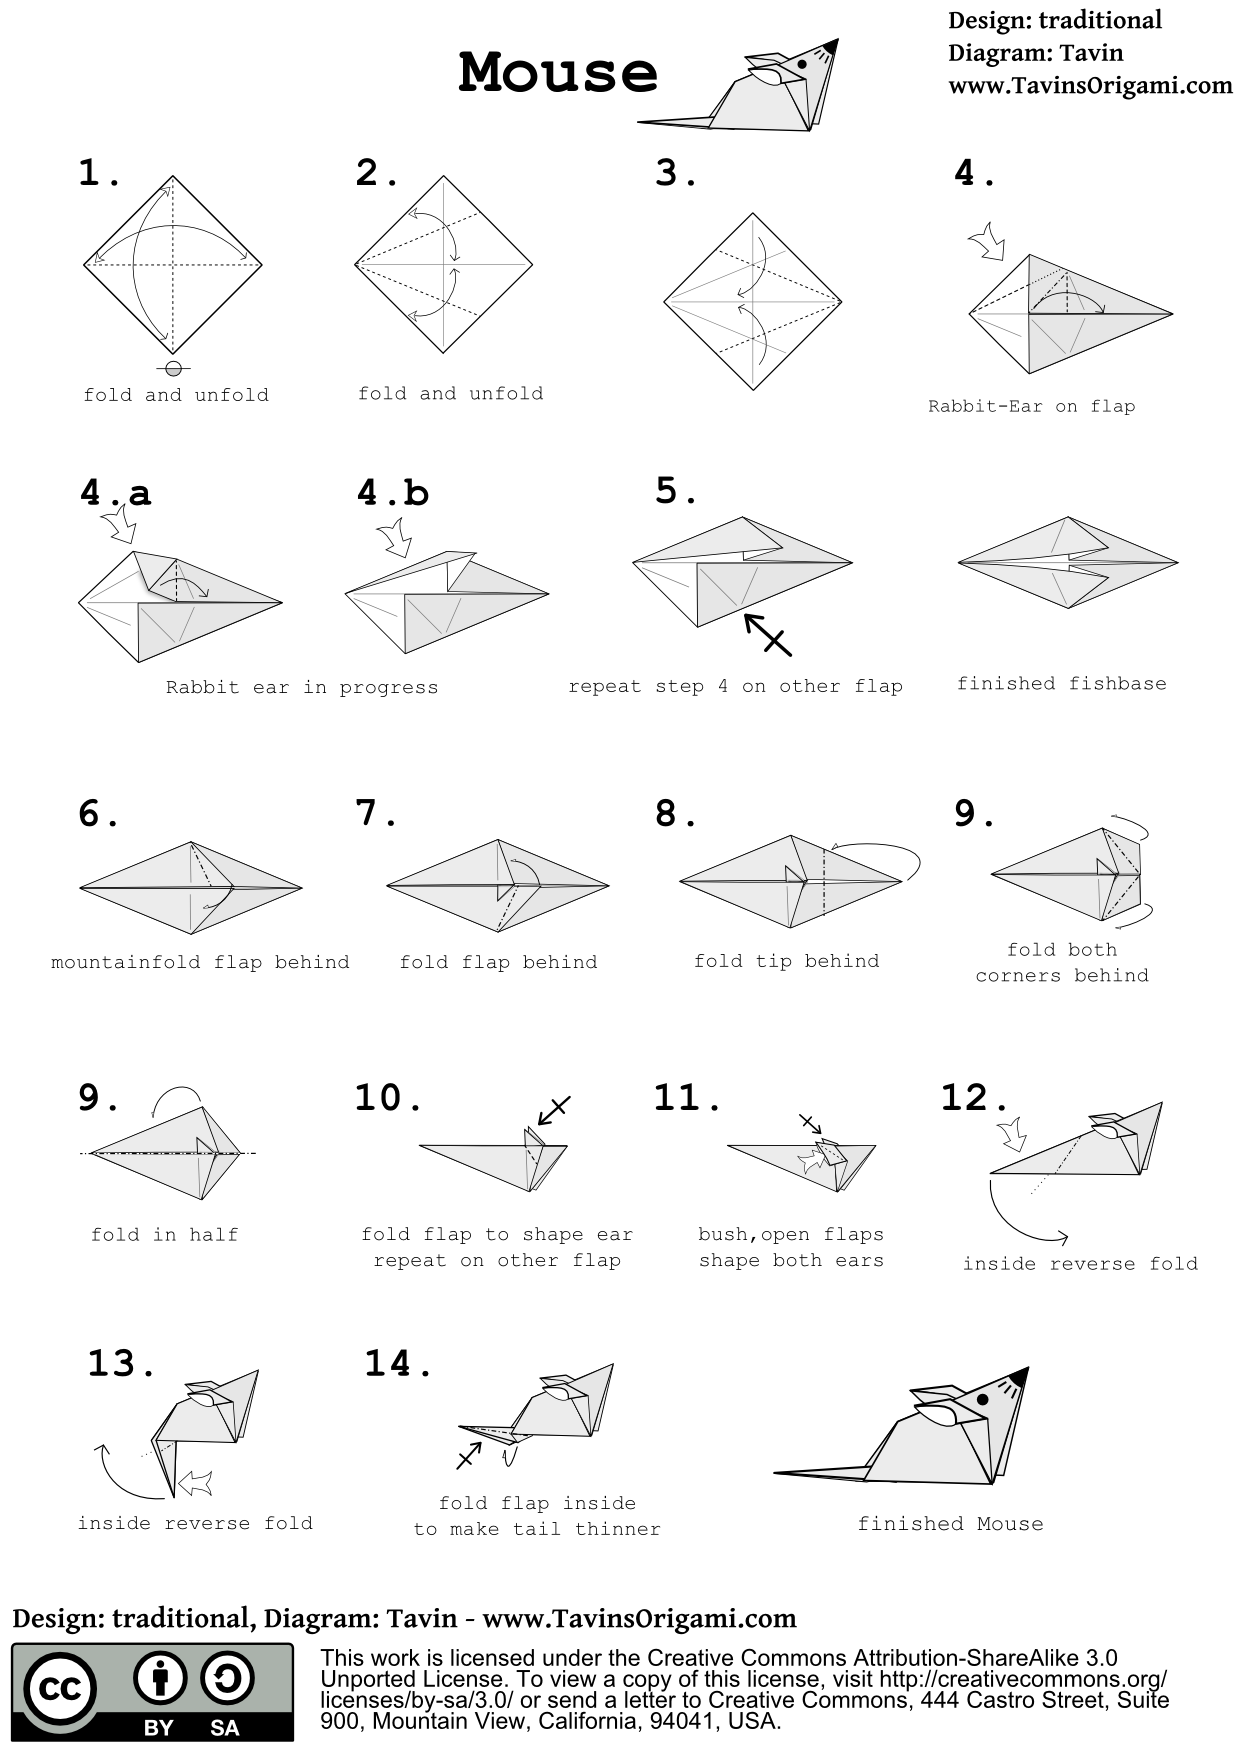 Origami Mouse Instructions - Tavin's Origami - photo#50